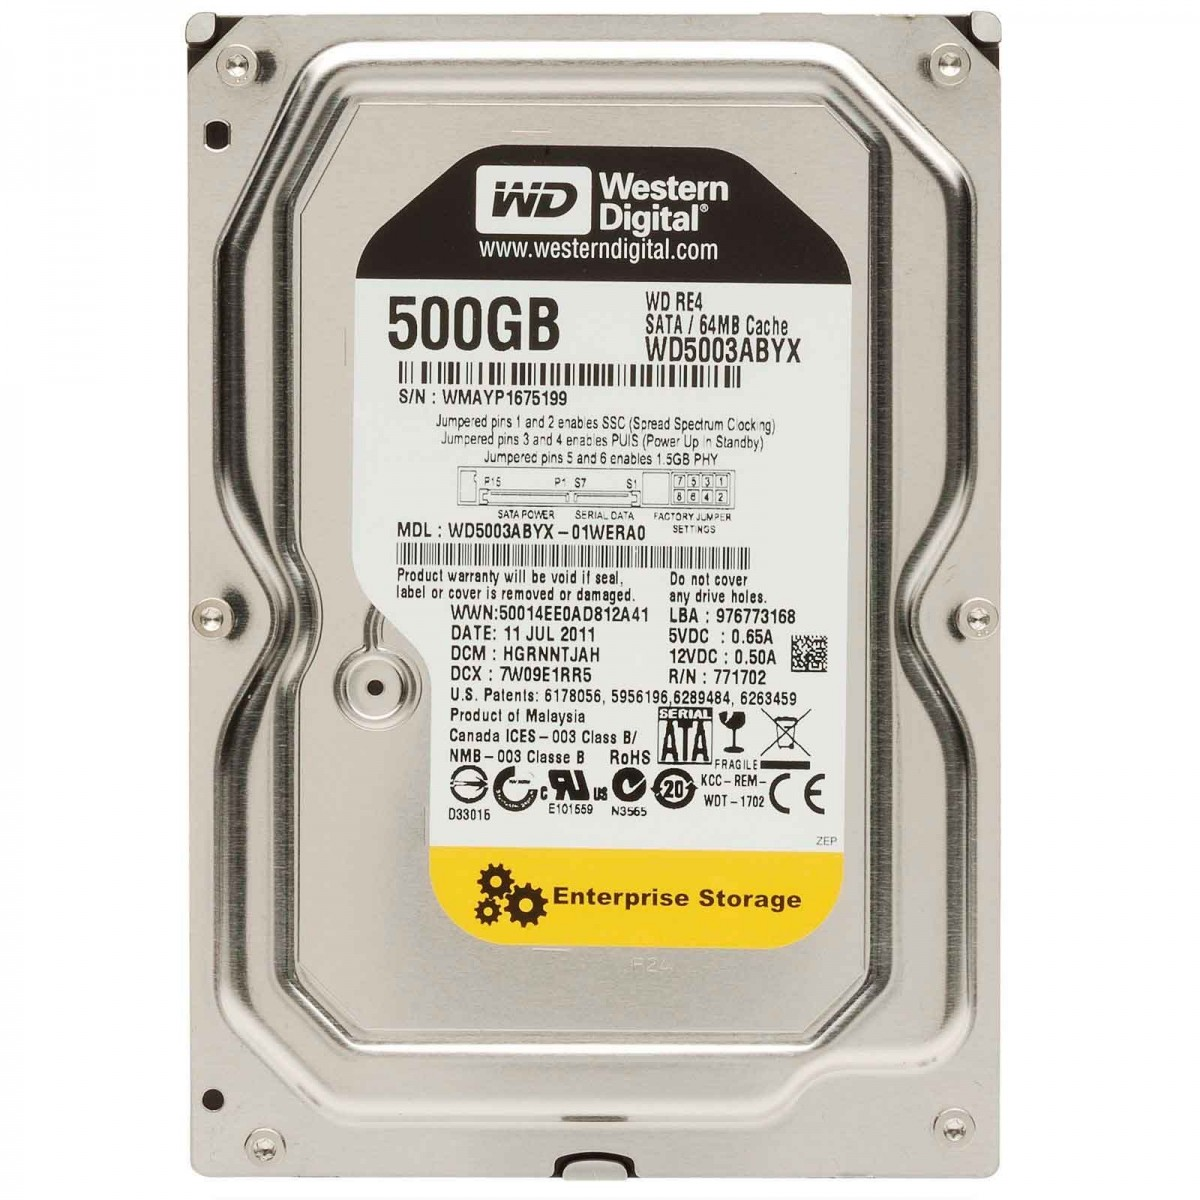 Hd 500Gb Sata3 Wester Digital 7200Rpm Wd5003Abyx